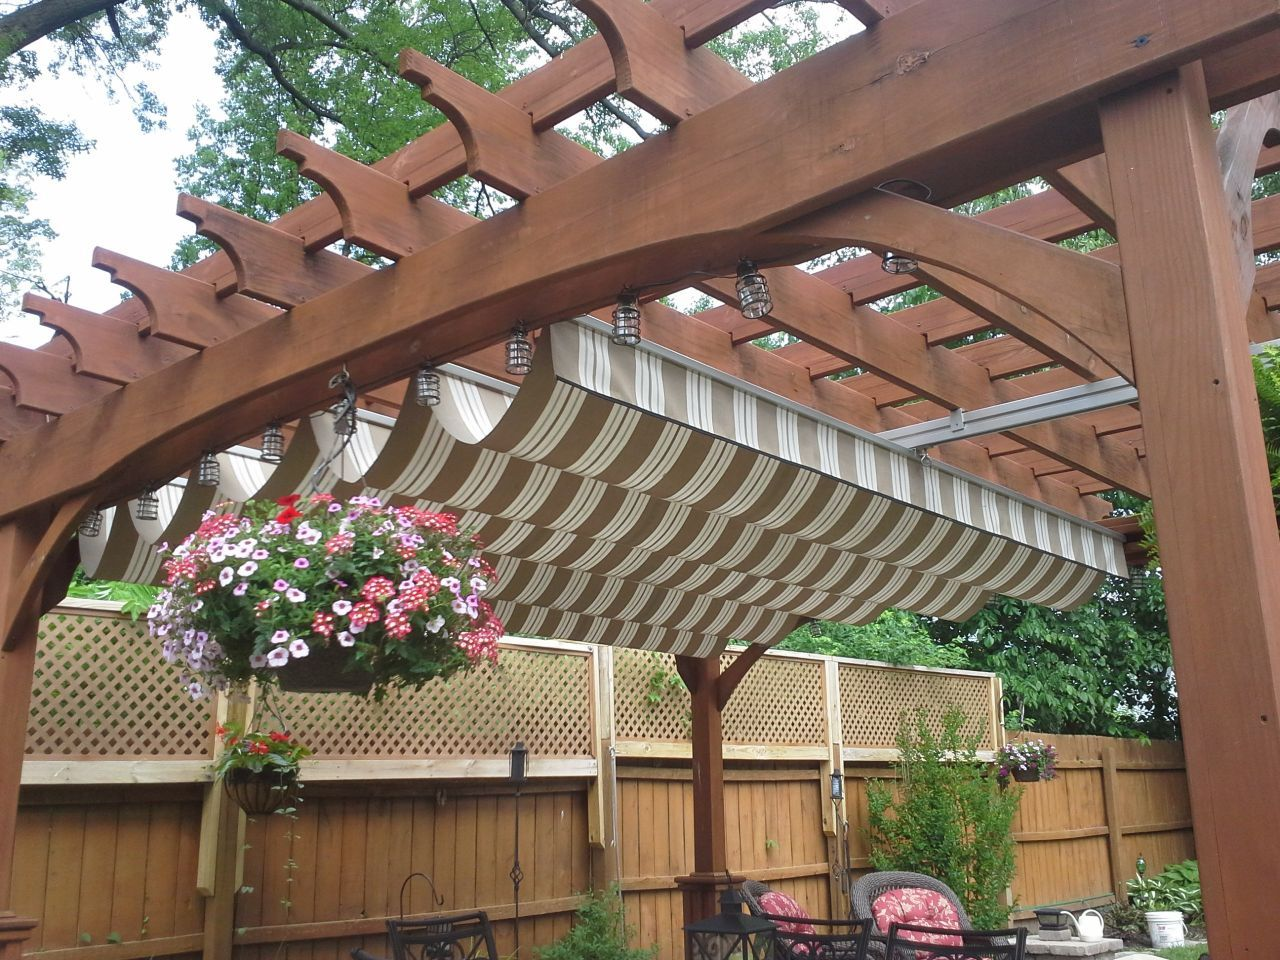 New options for outdoor shading Lifestyles stltodaycom